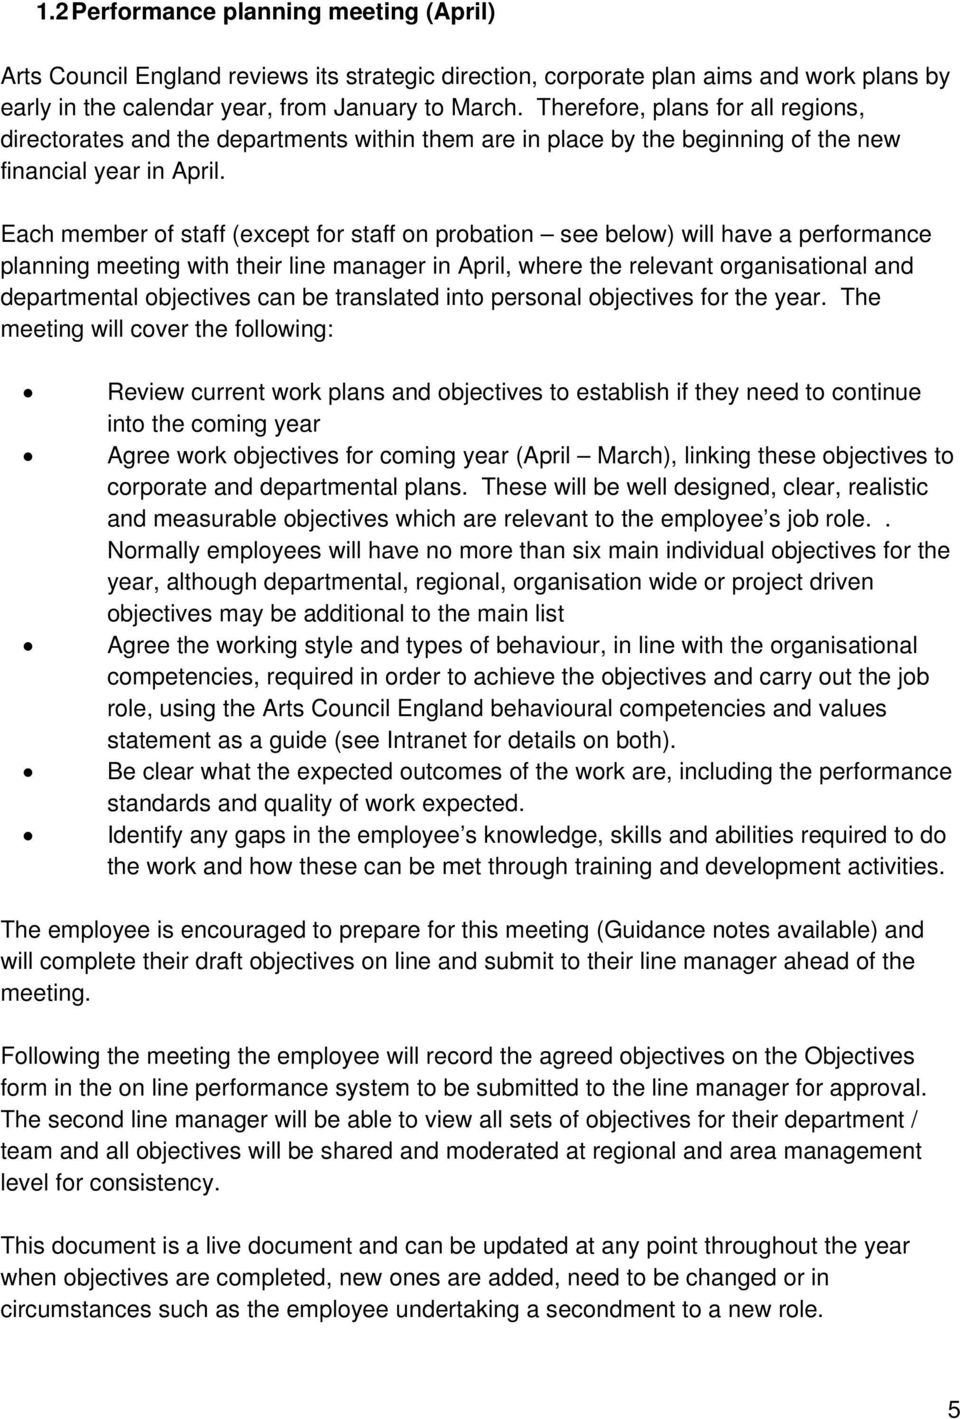 Each member of staff (except for staff on probation see below) will have a performance planning meeting with their line manager in April, where the relevant organisational and departmental objectives